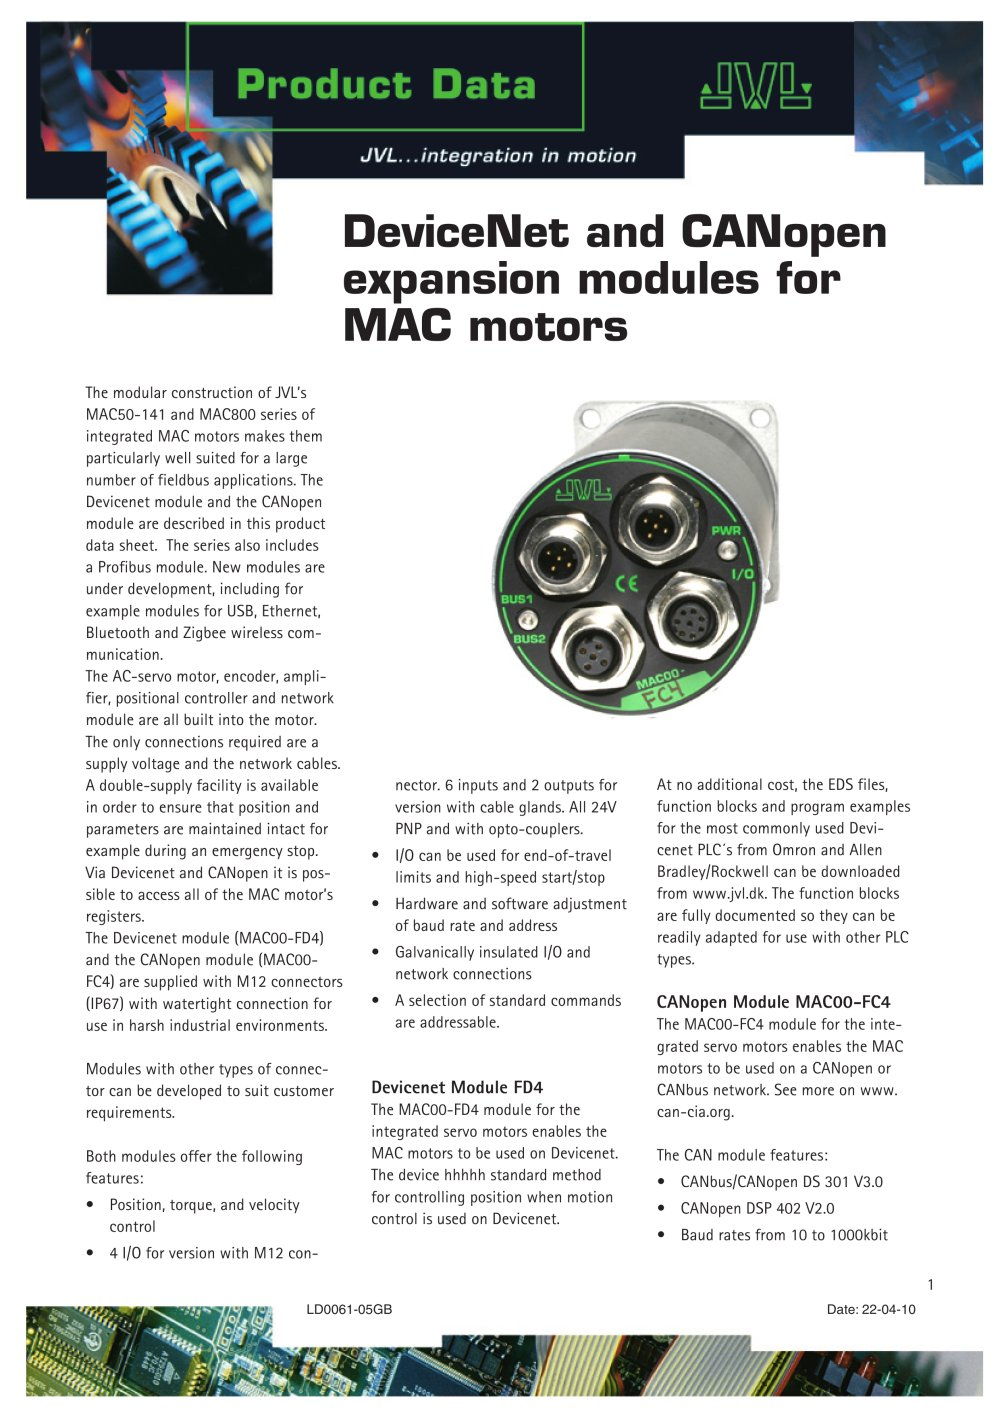 DeviceNet and CANopen expansion modules for MAC motors - JVL - PDF